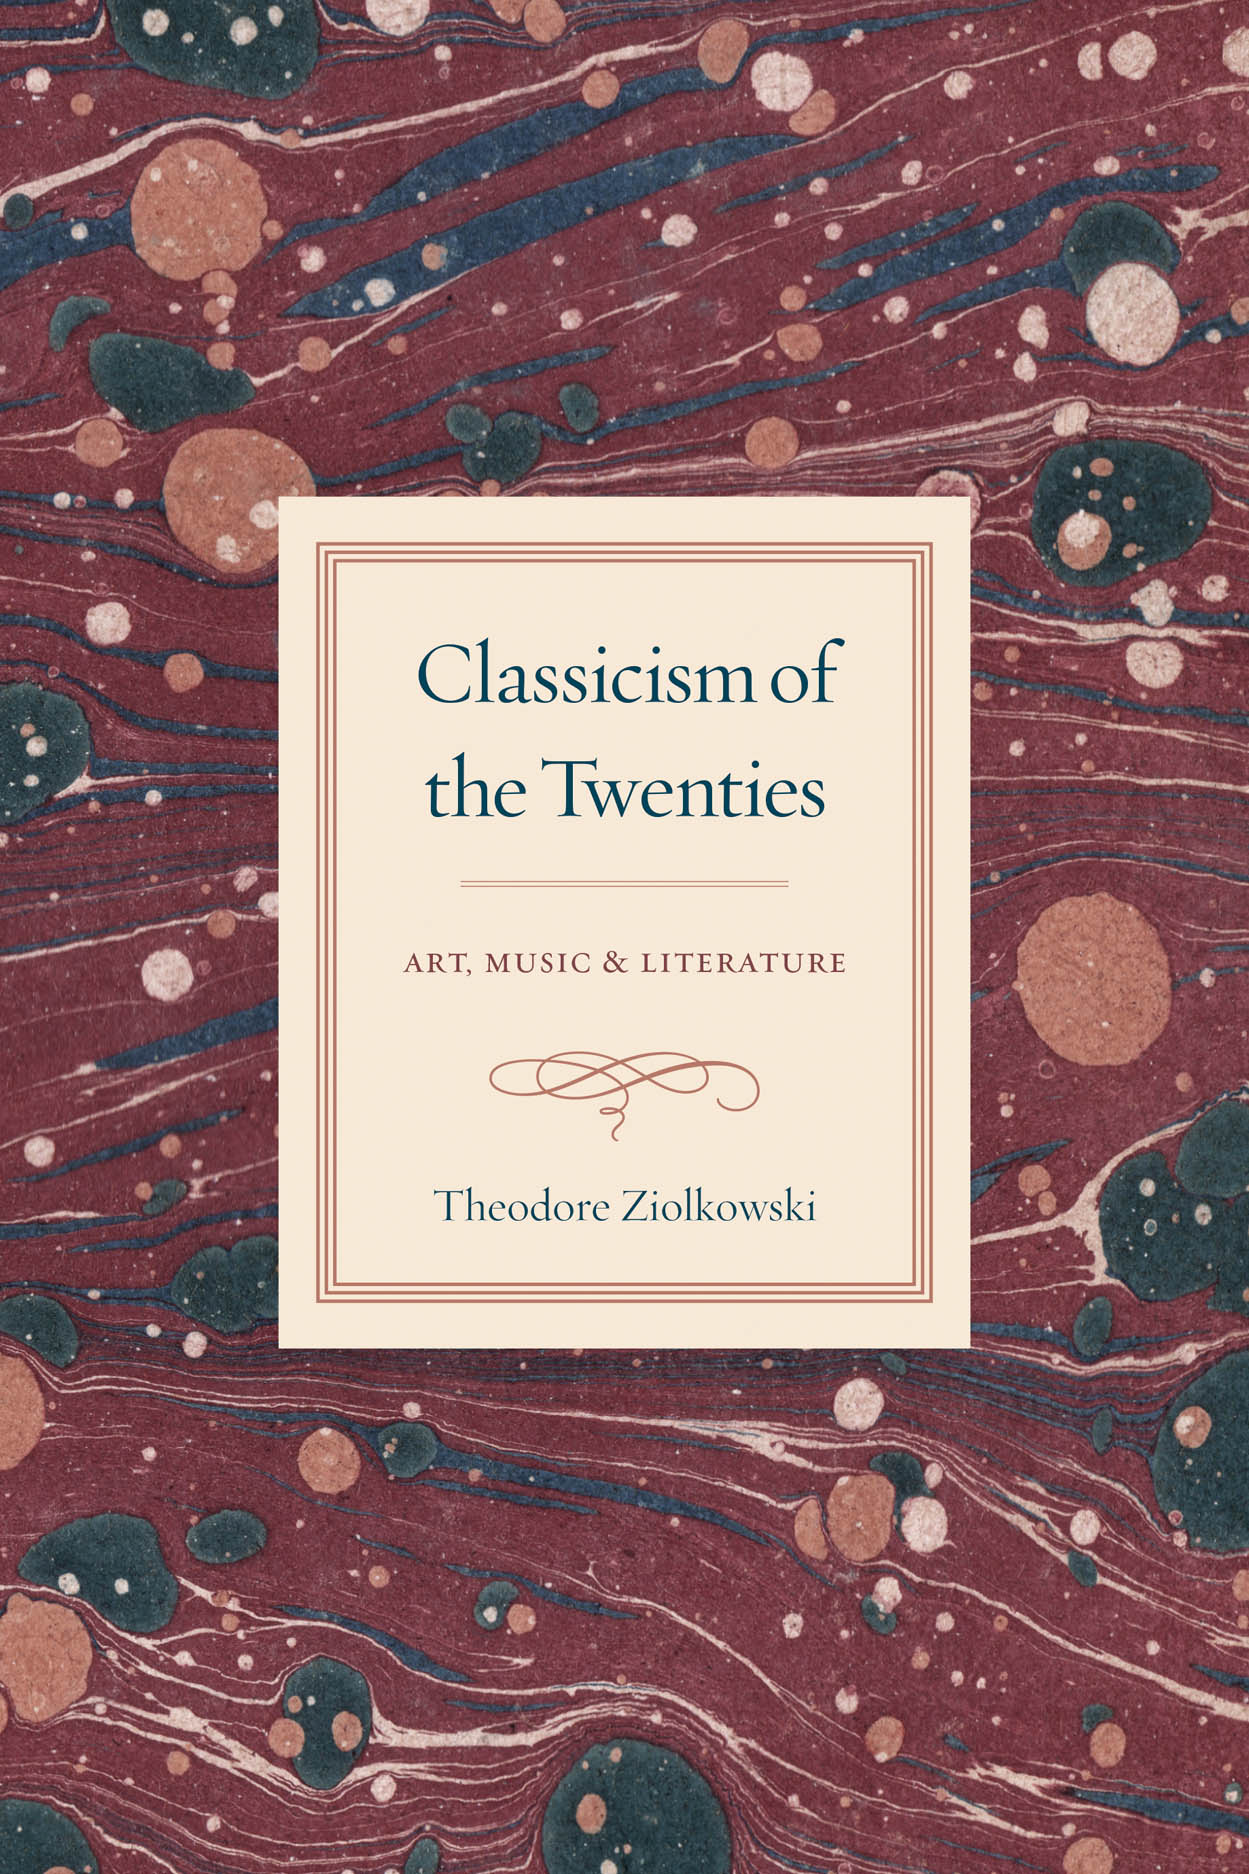 Classicism of the Twenties